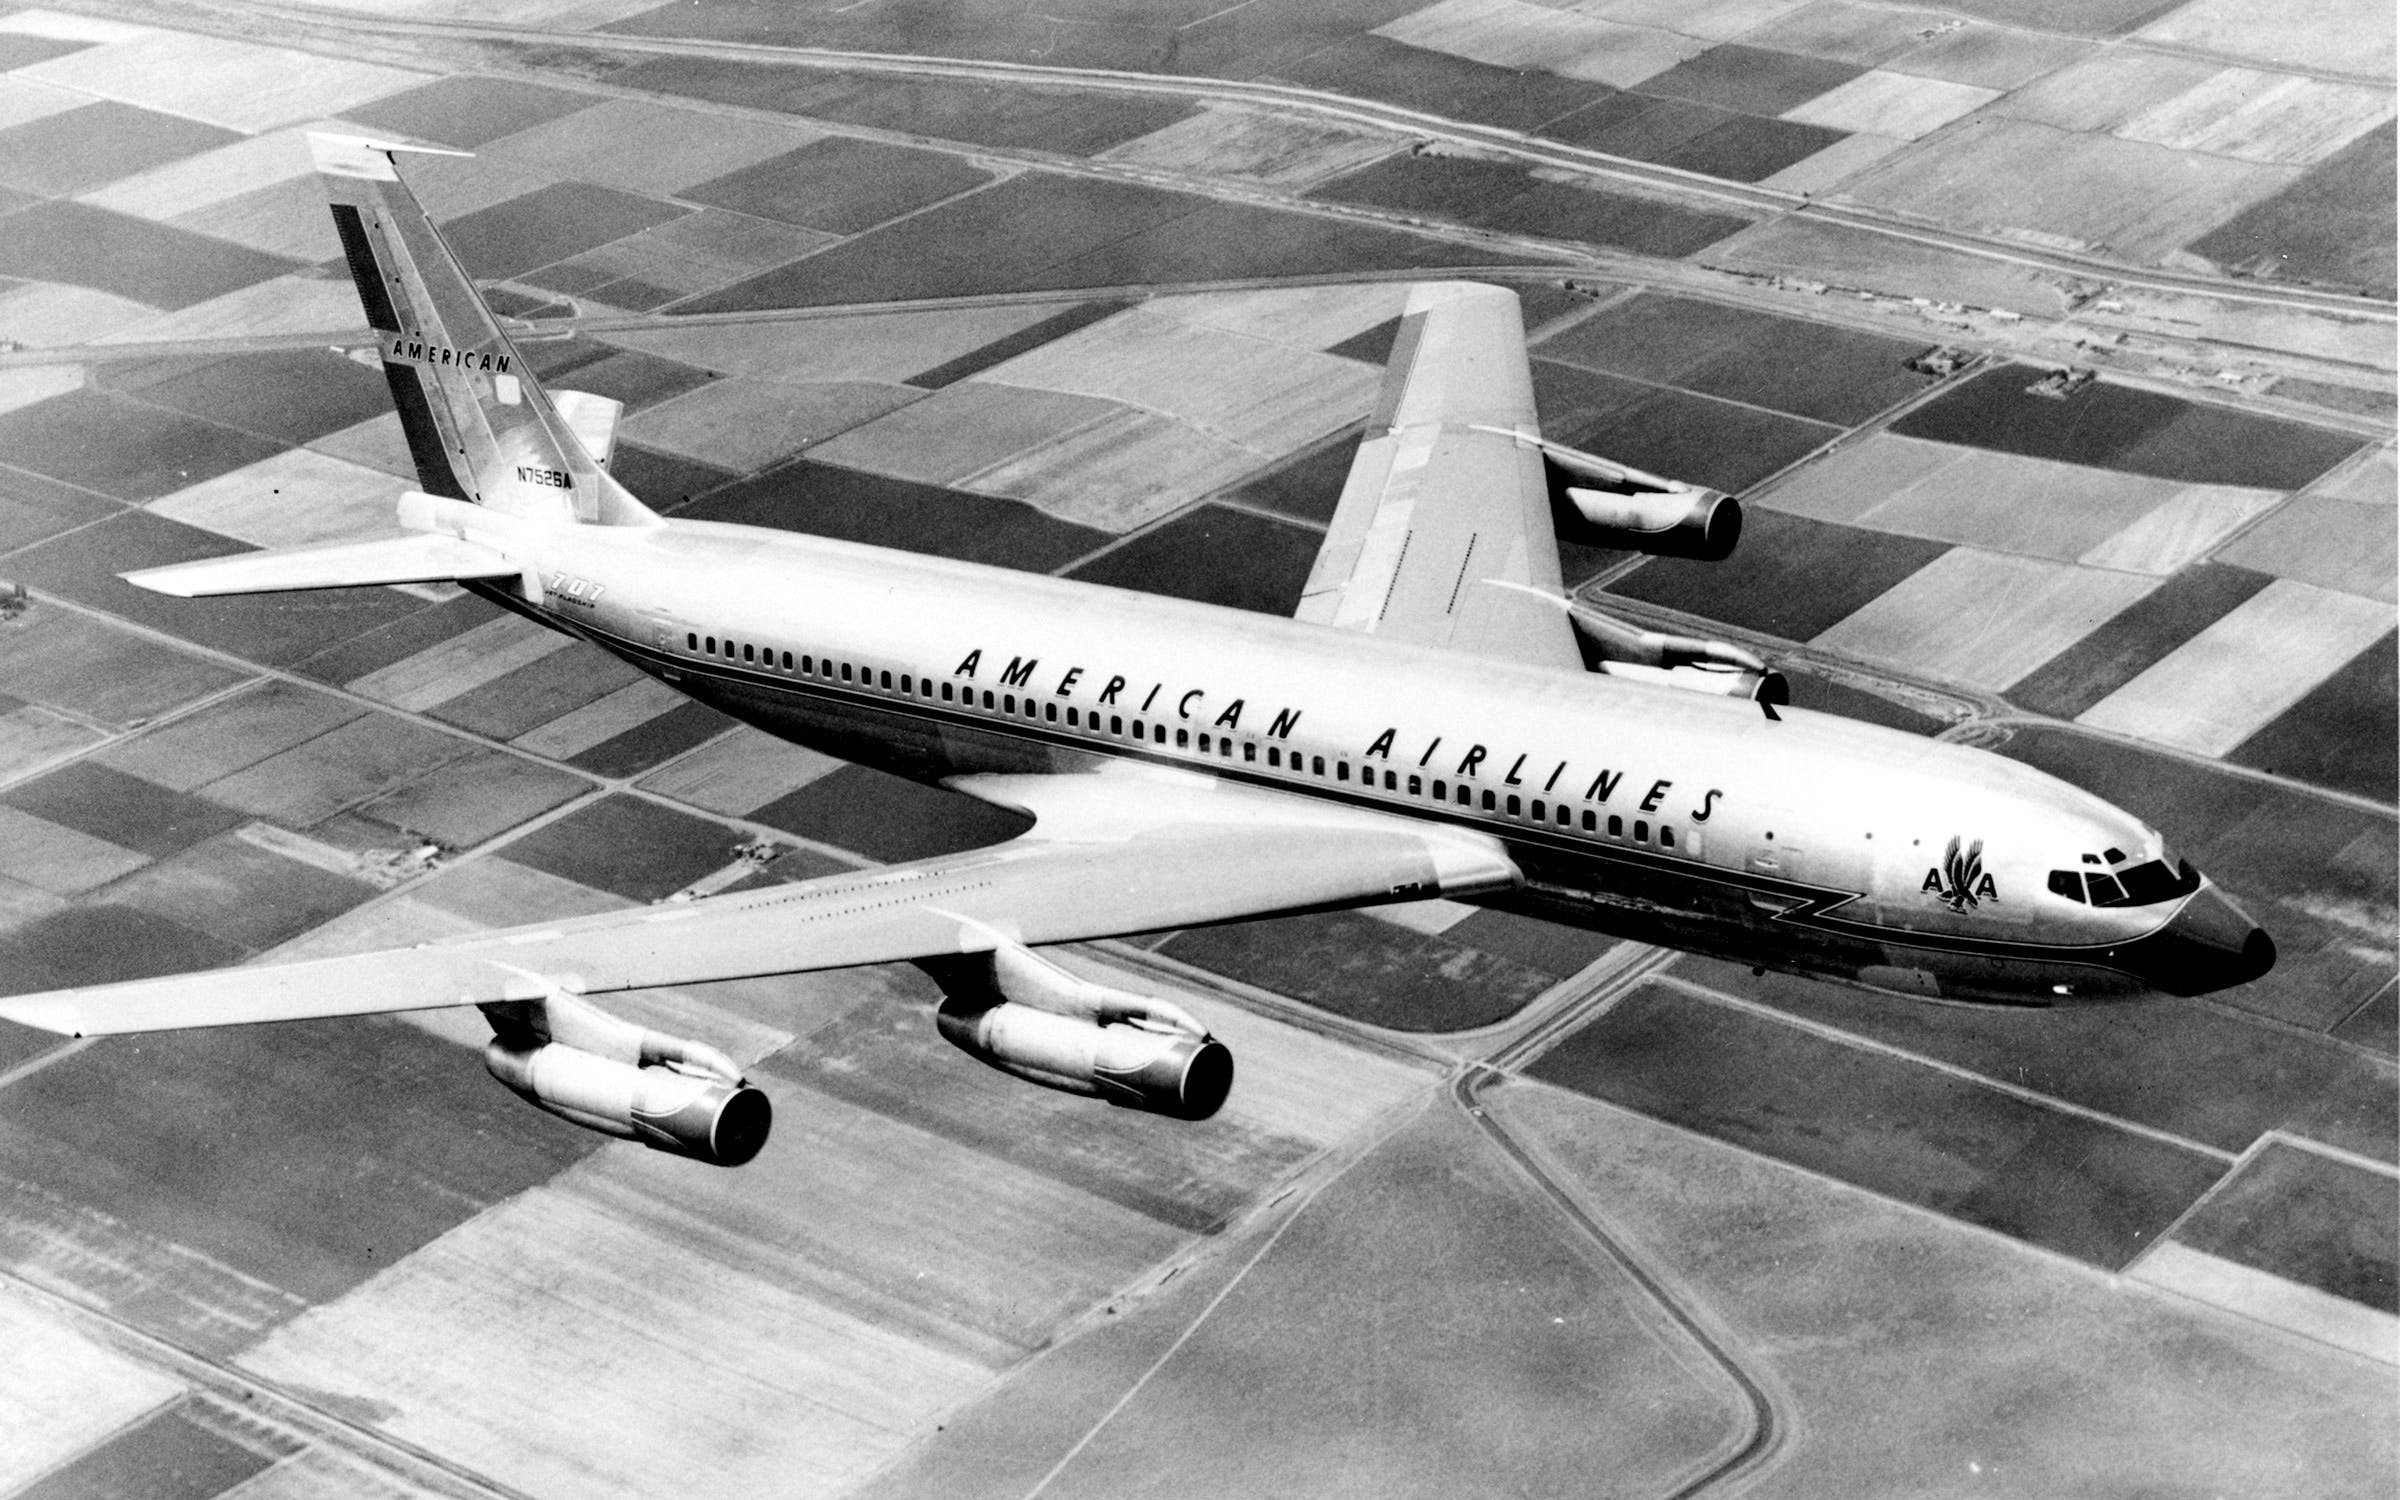 A 1960 photo of a an American Airlines Boeing 707-102-B in flight.